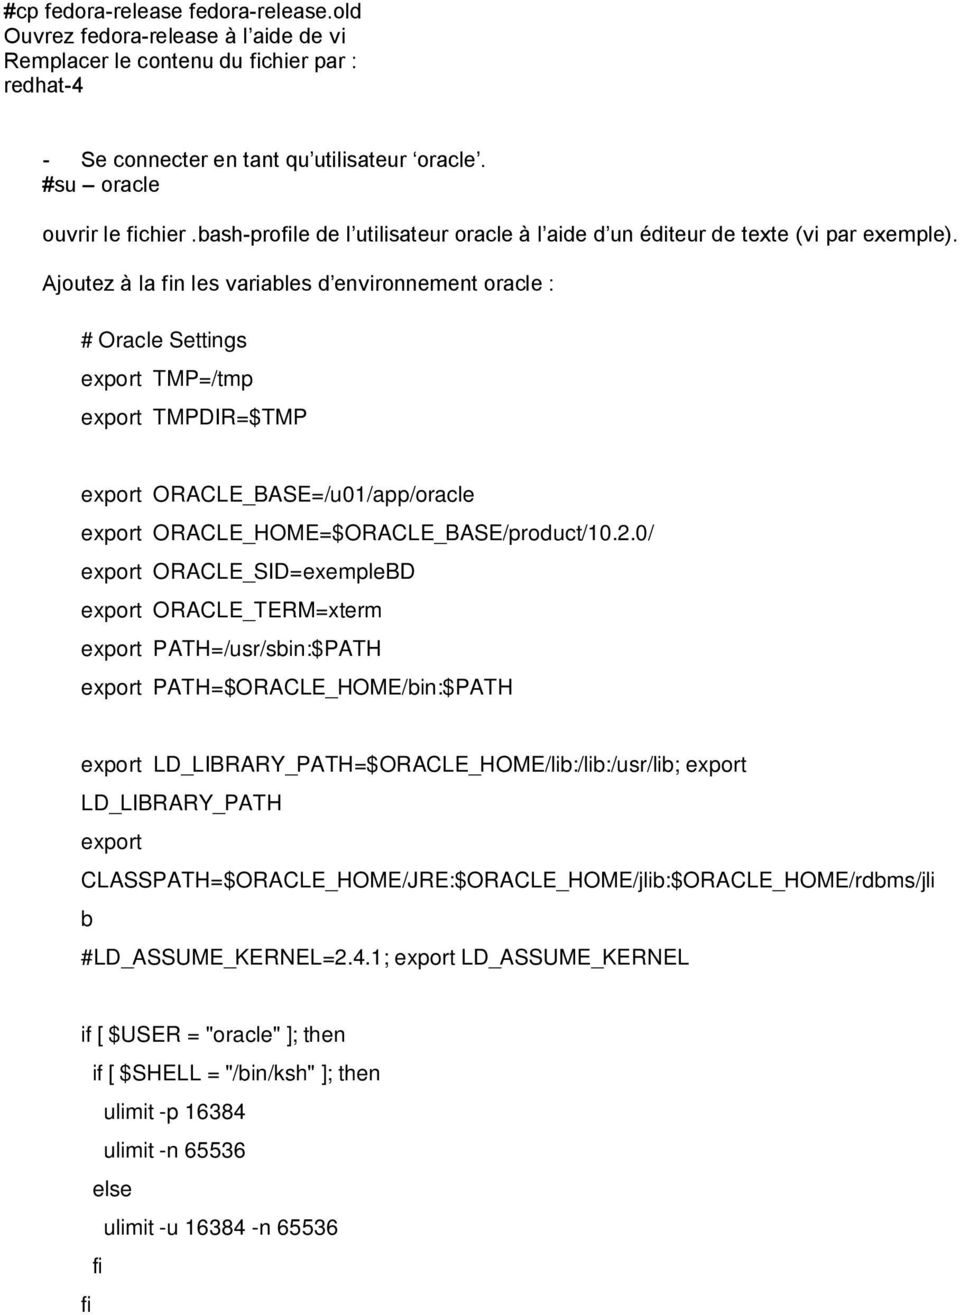 Ajoutez à la fin les variables d environnement oracle : # Oracle Settings export TMP=/tmp export TMPDIR=$TMP export ORACLE_BASE=/u01/app/oracle export ORACLE_HOME=$ORACLE_BASE/product/10.2.